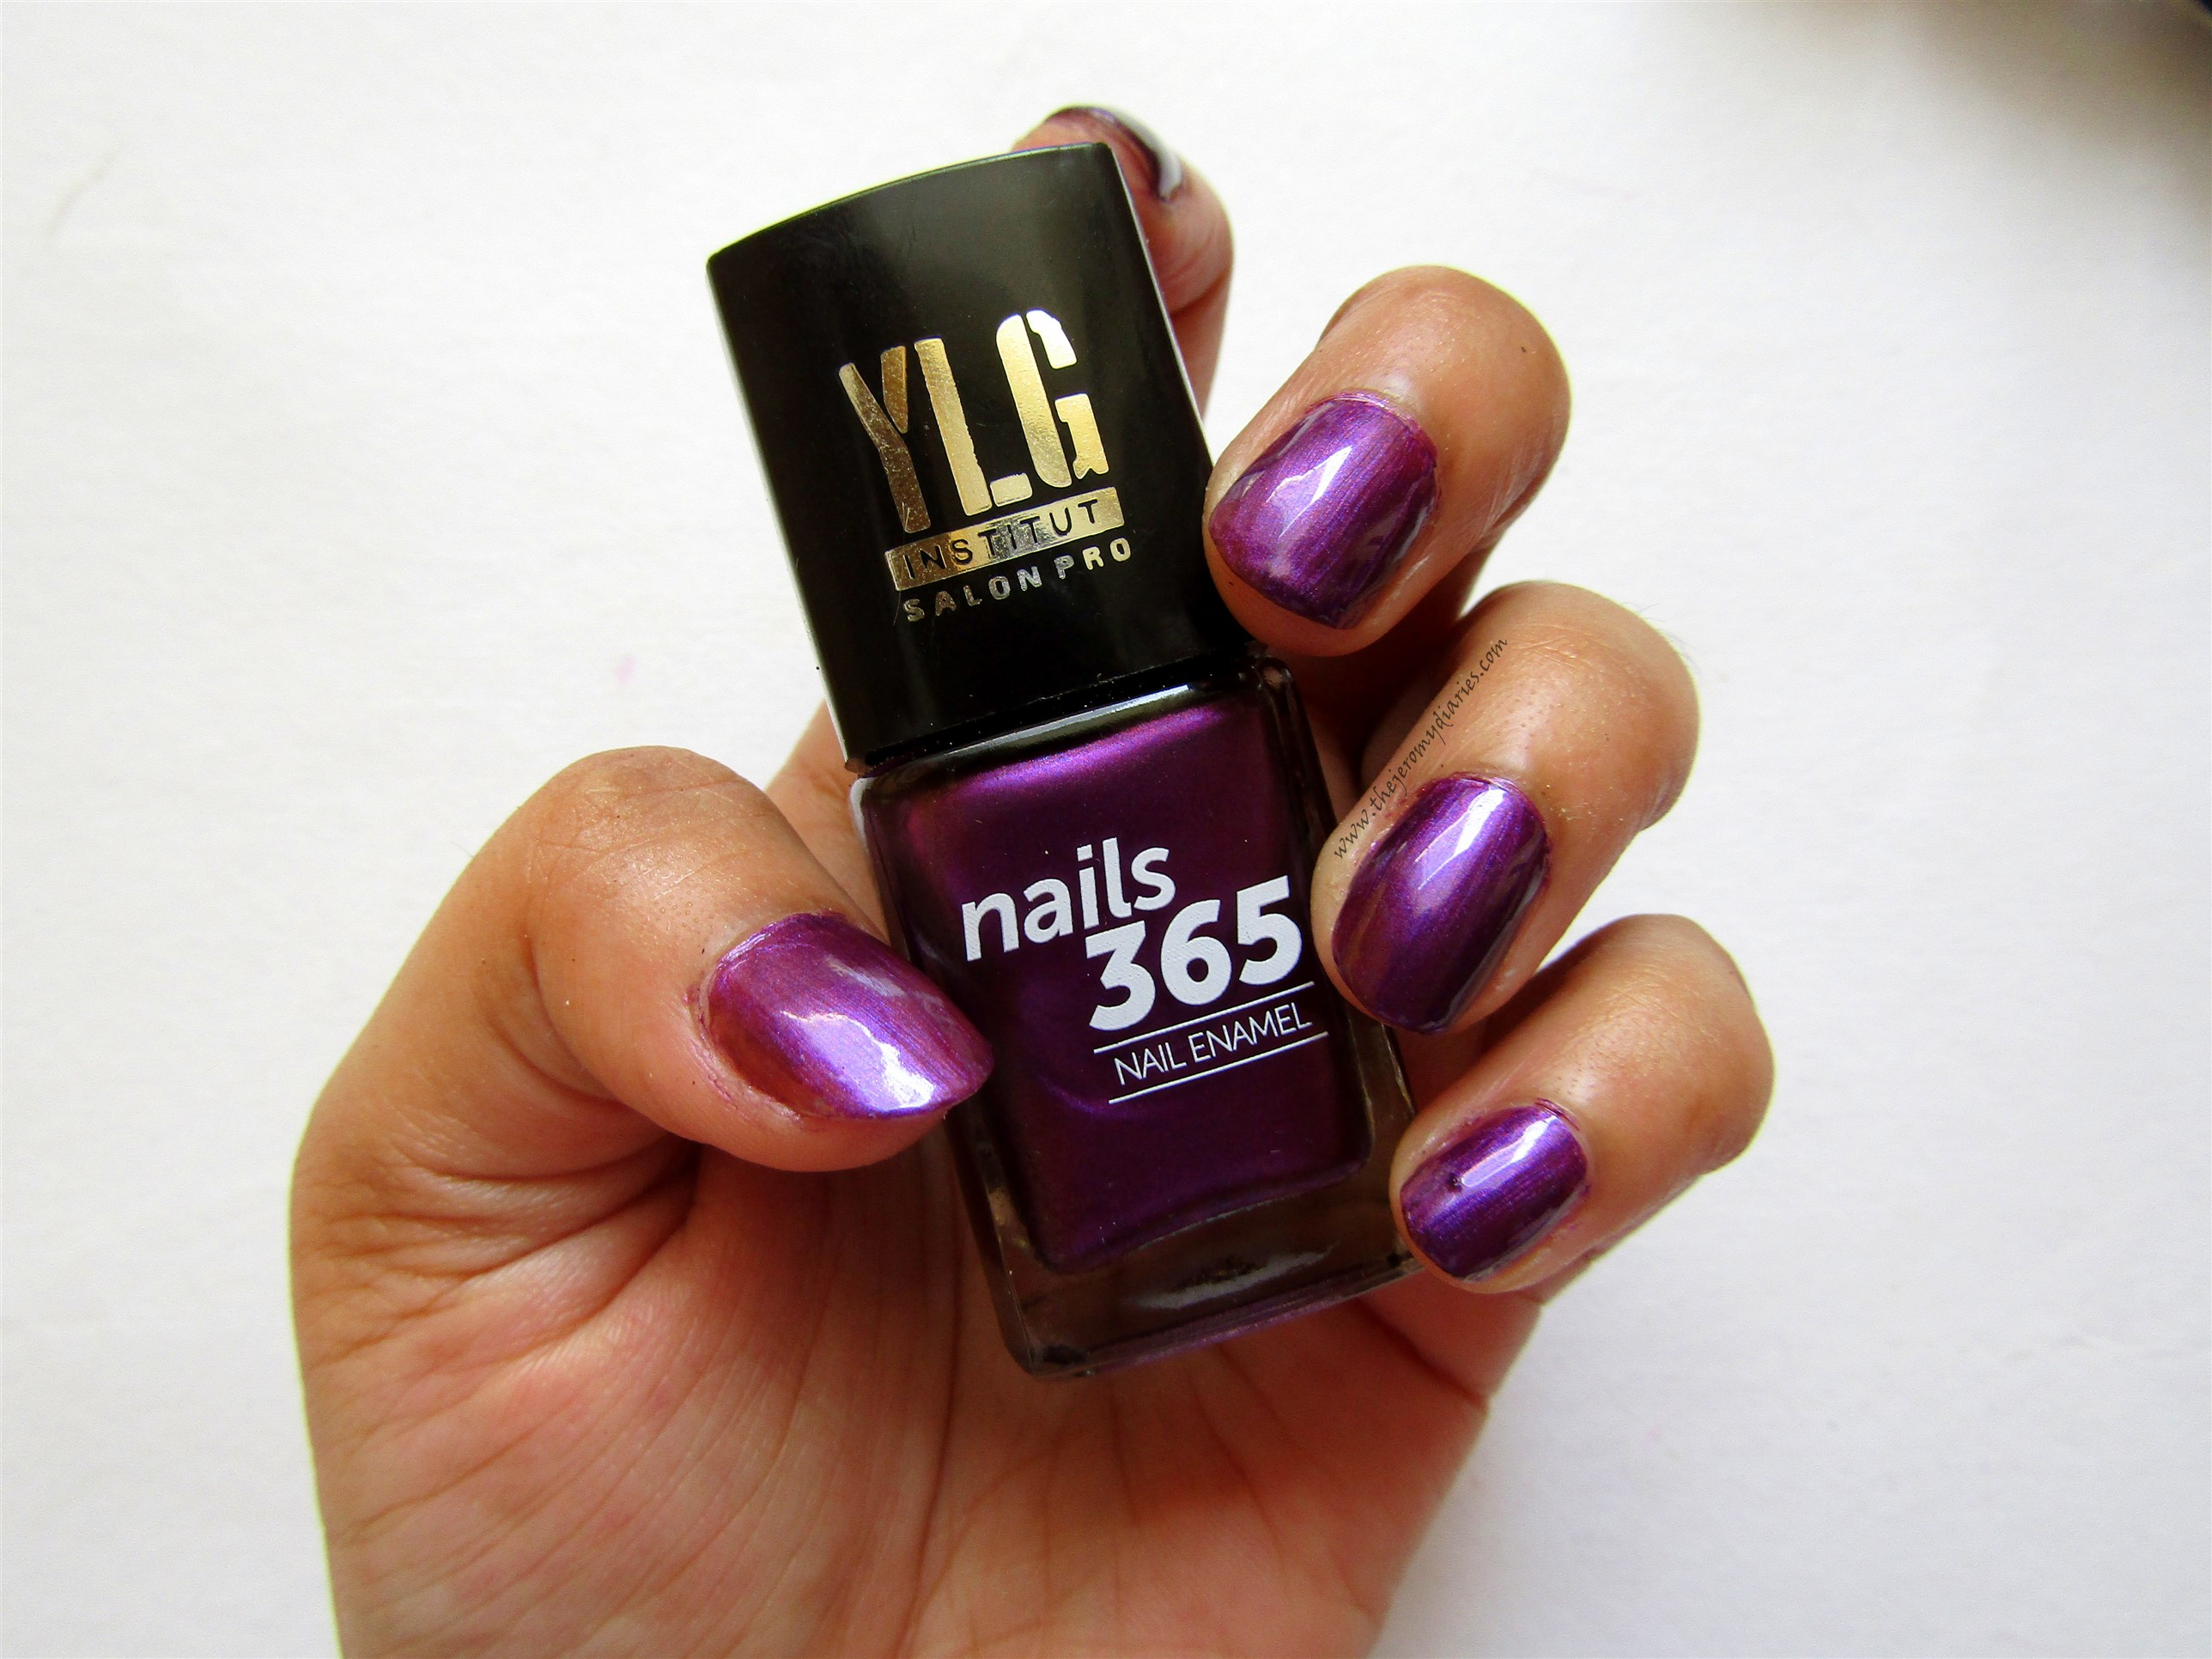 ylg nails 365 purple nail paint swatches the jeromy diaries